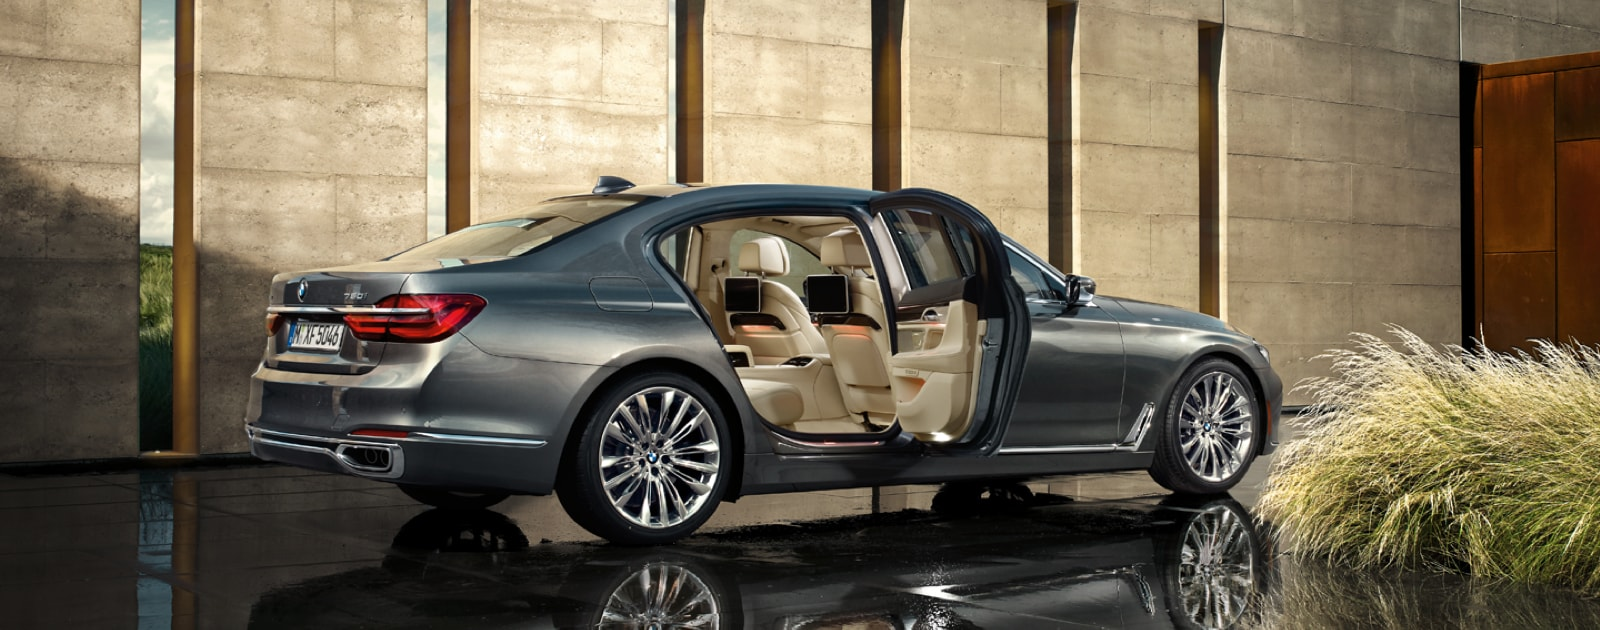 hight resolution of under the 7 series s hood standard for the 2017 bmw 7 series 740i